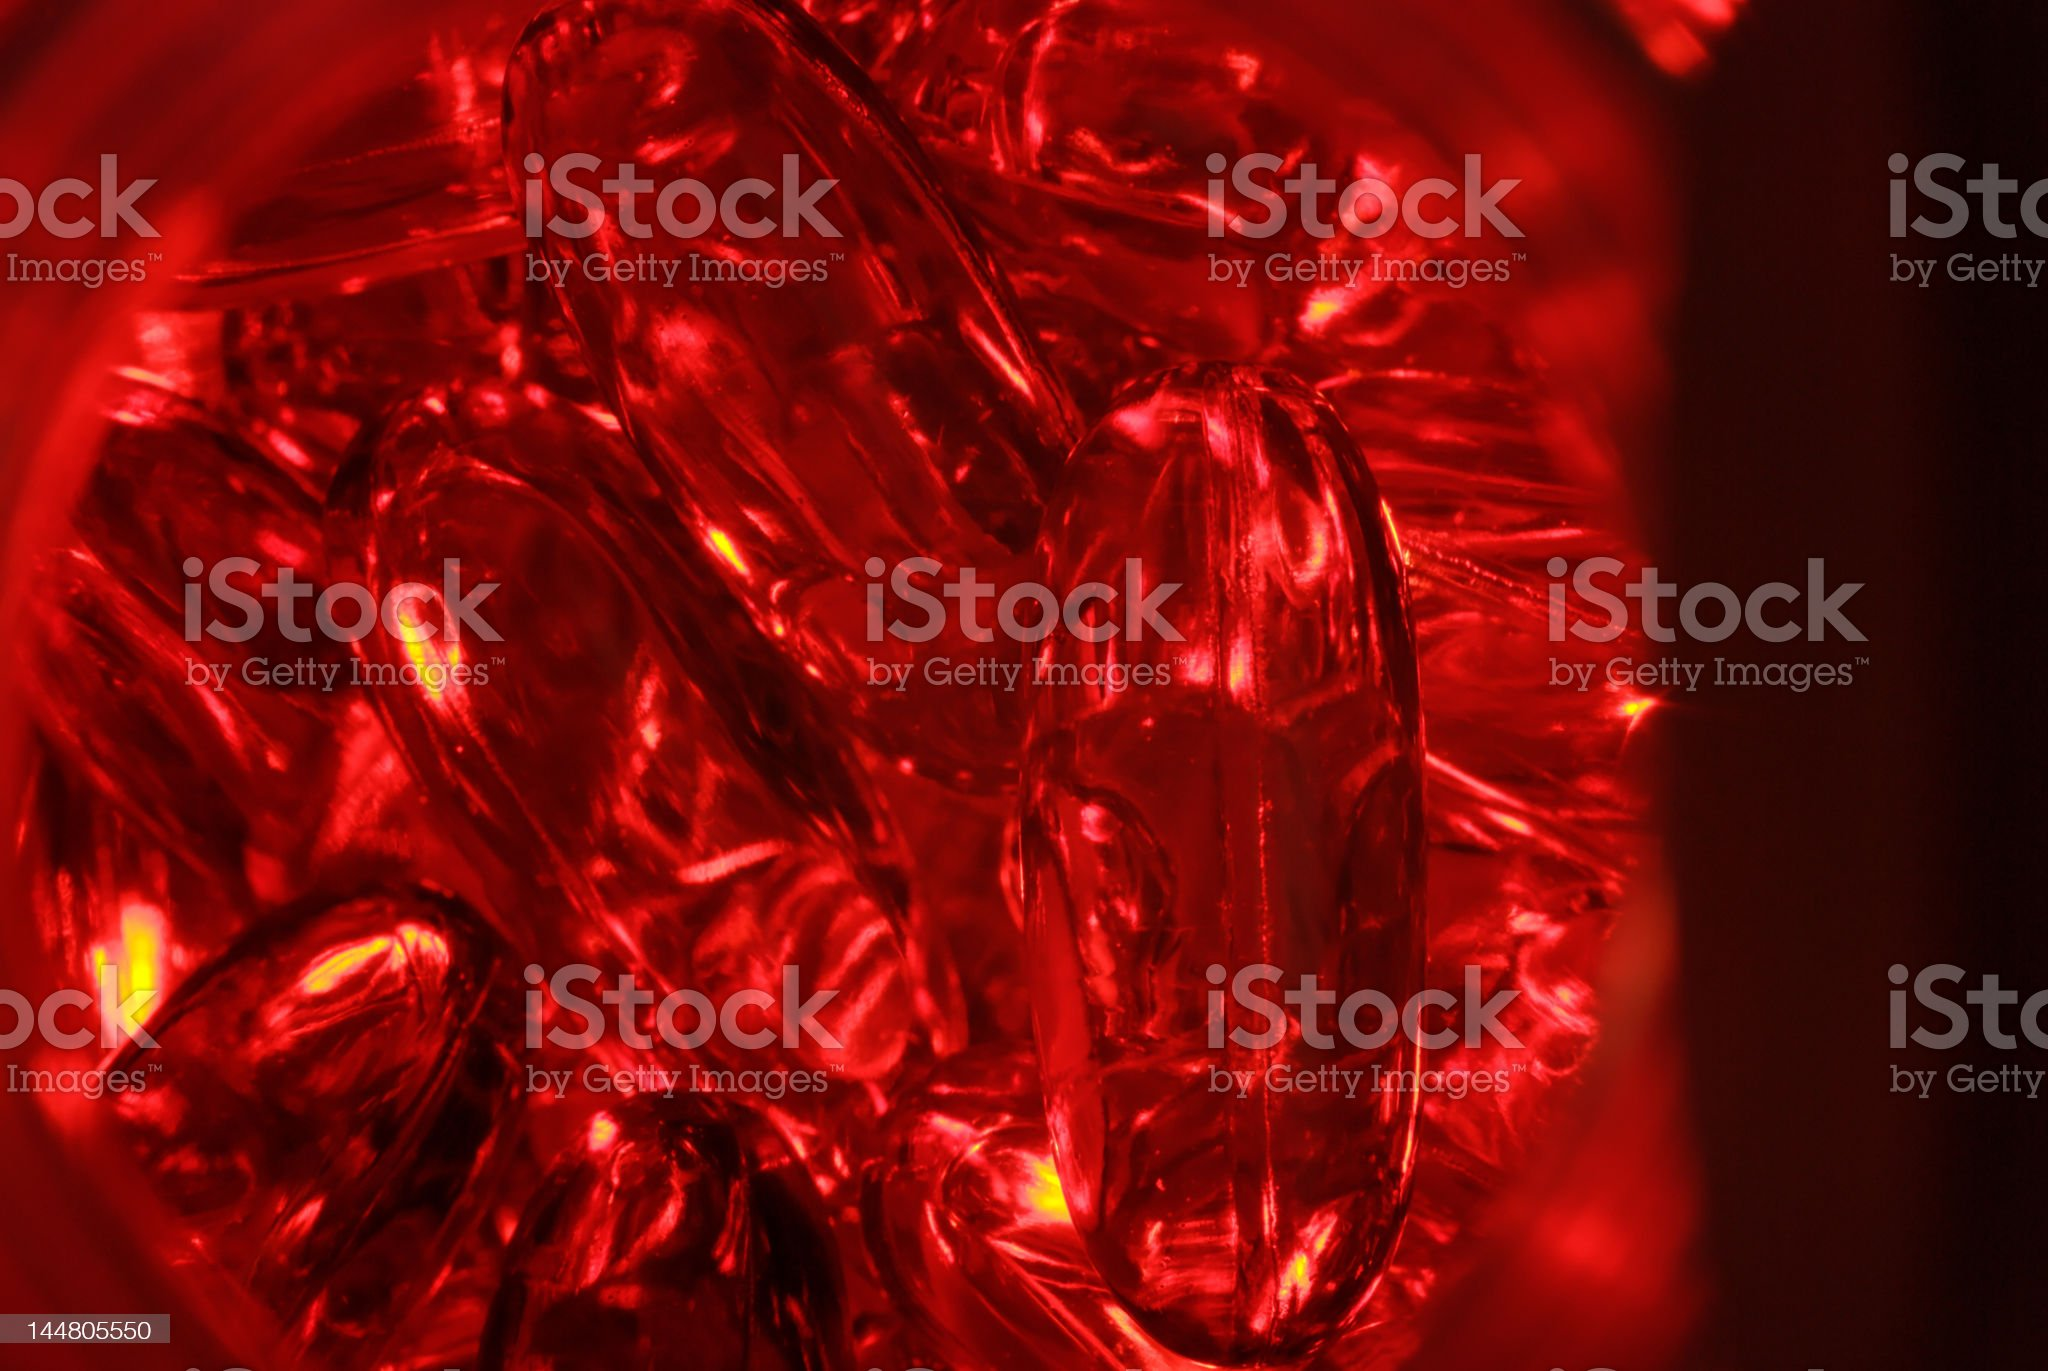 Red Capsules in a Jar royalty-free stock photo